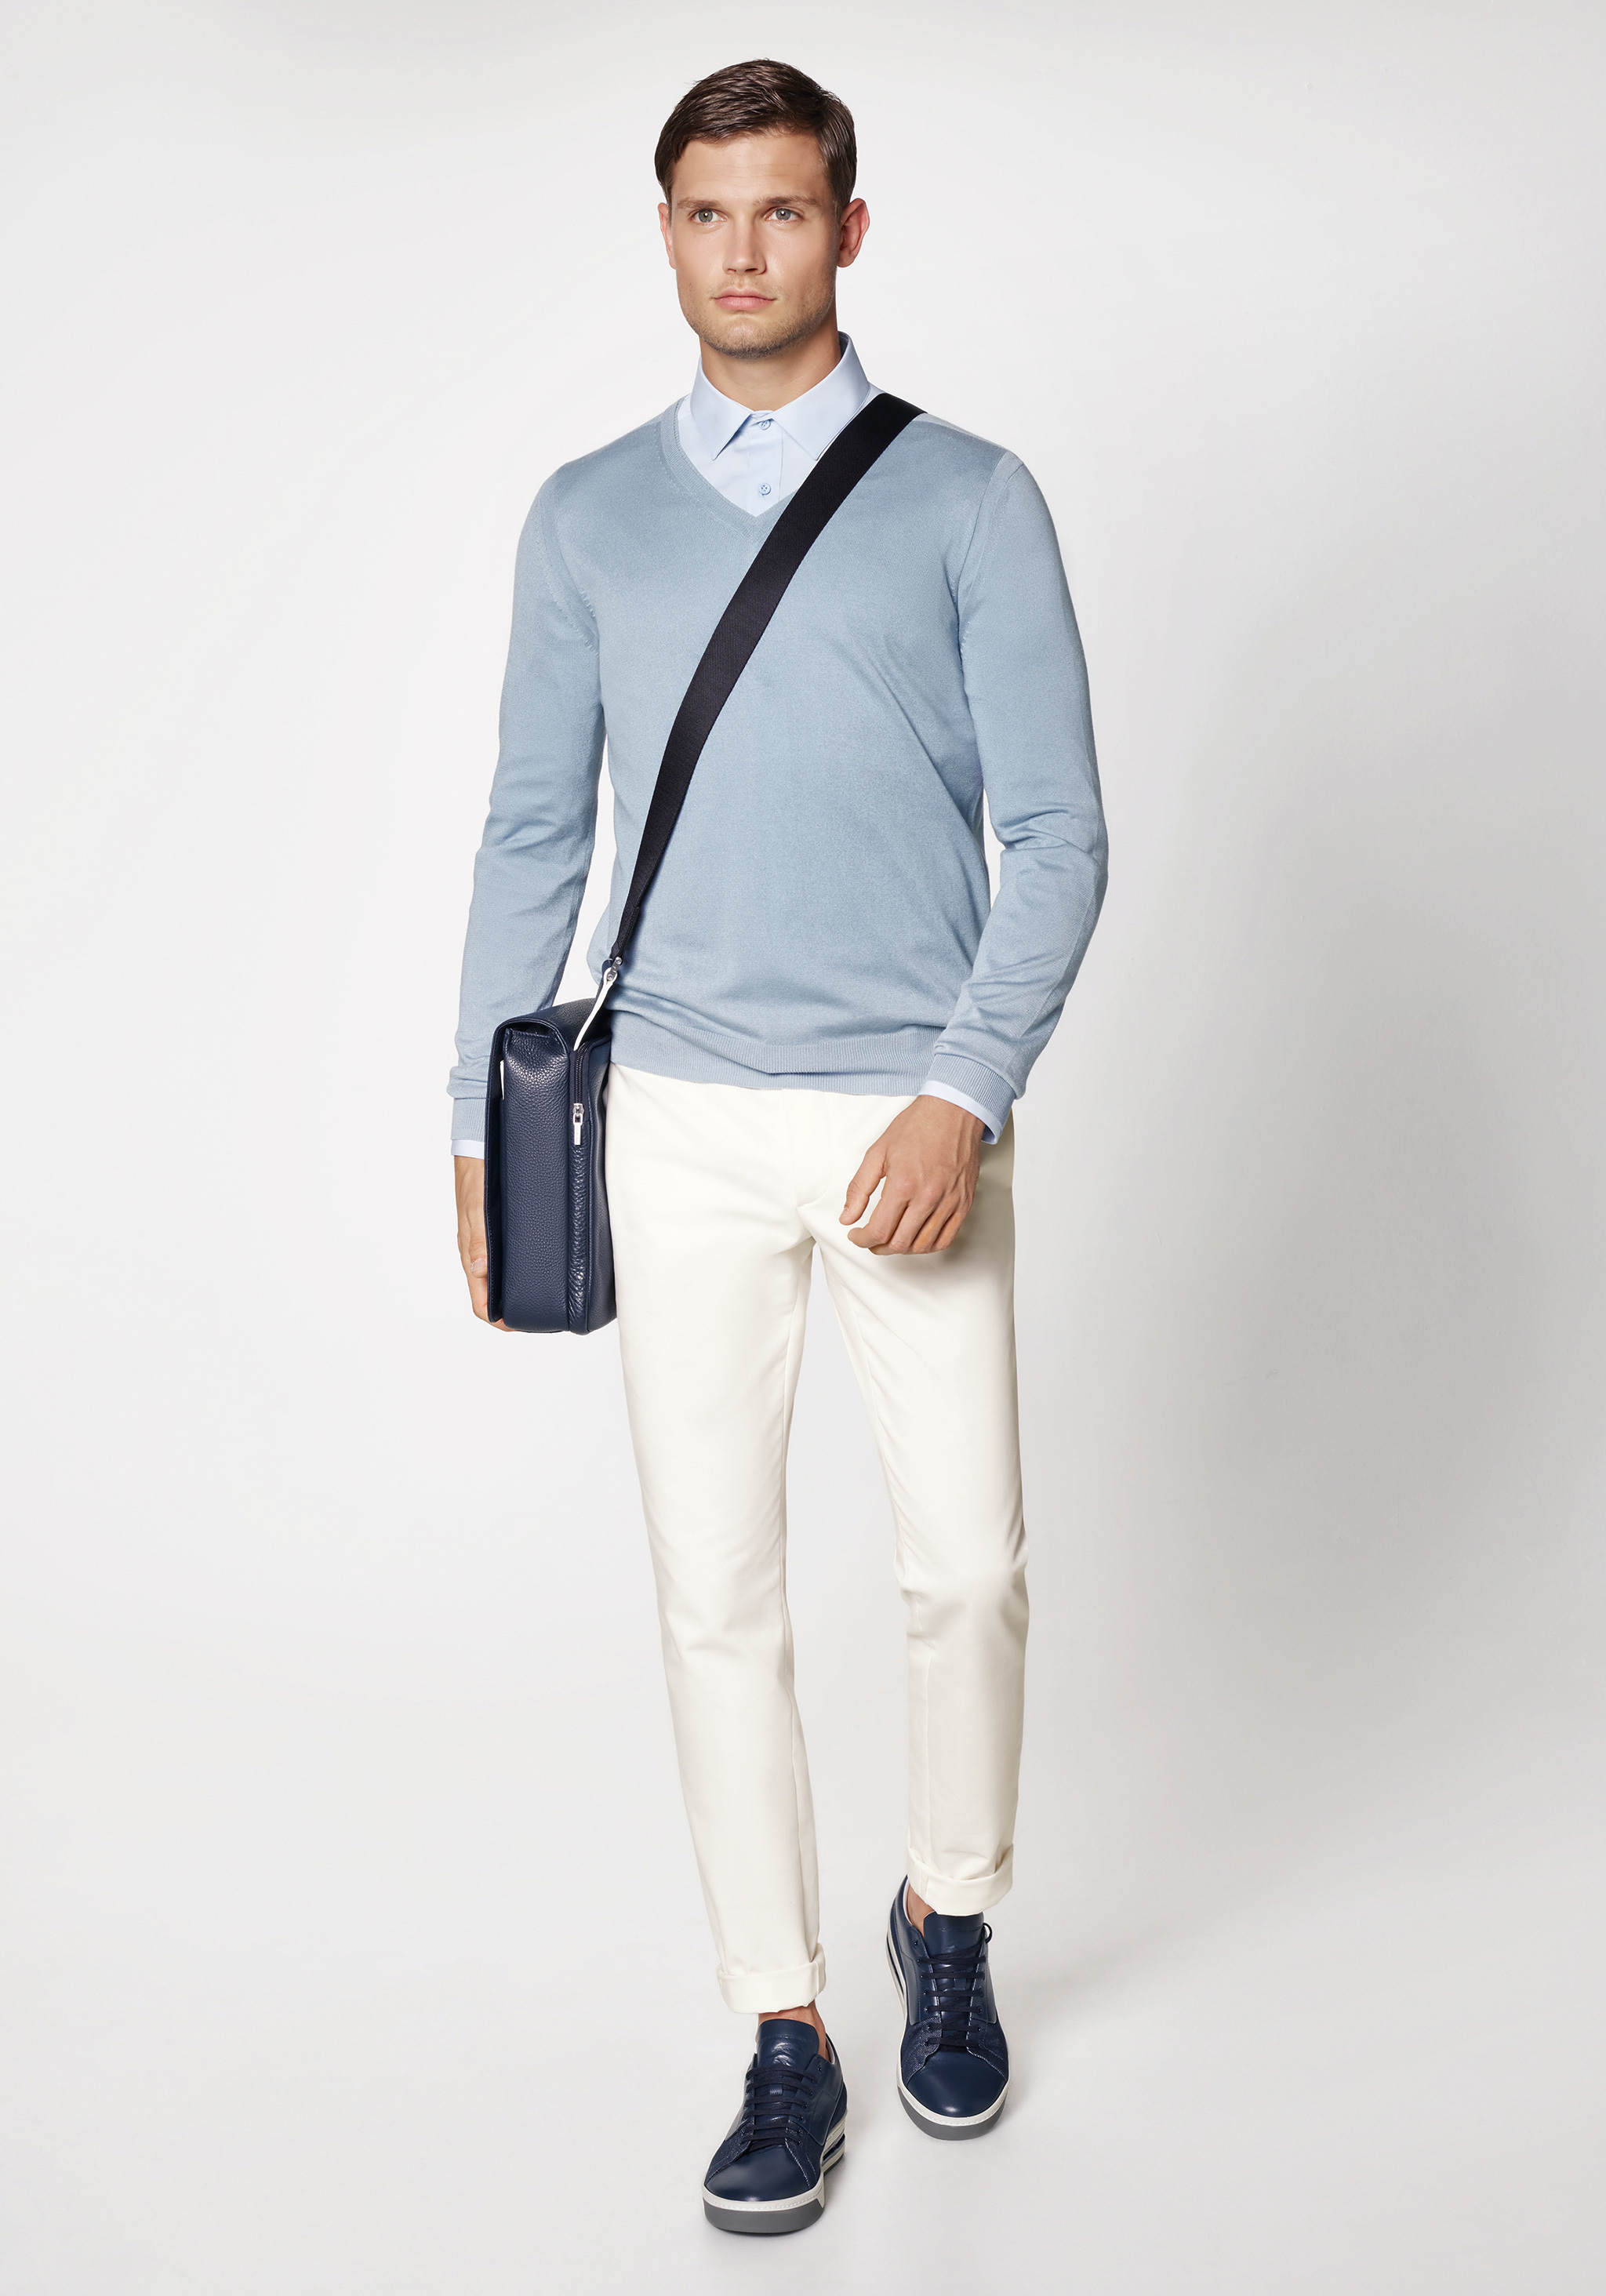 How to Wear a Light Blue V-neck Sweater (6 looks) | Men's Fashion